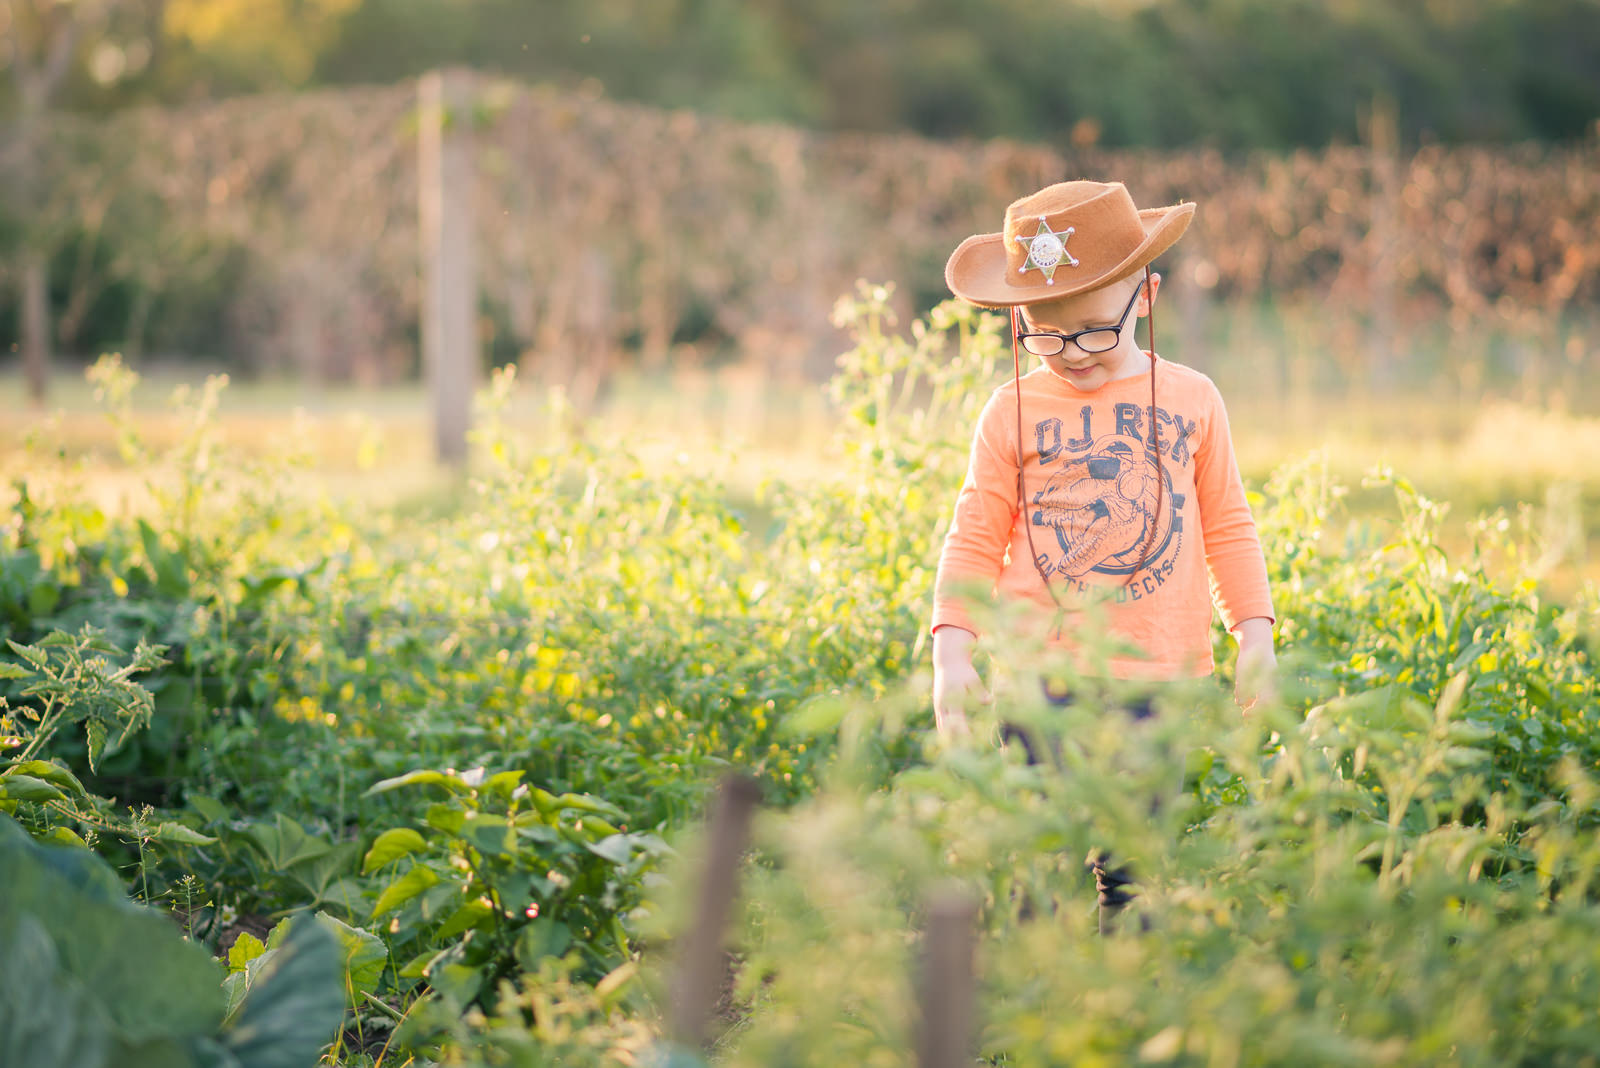 Portrait of little cowboy standing in vegetation in a rural setting in elimbah